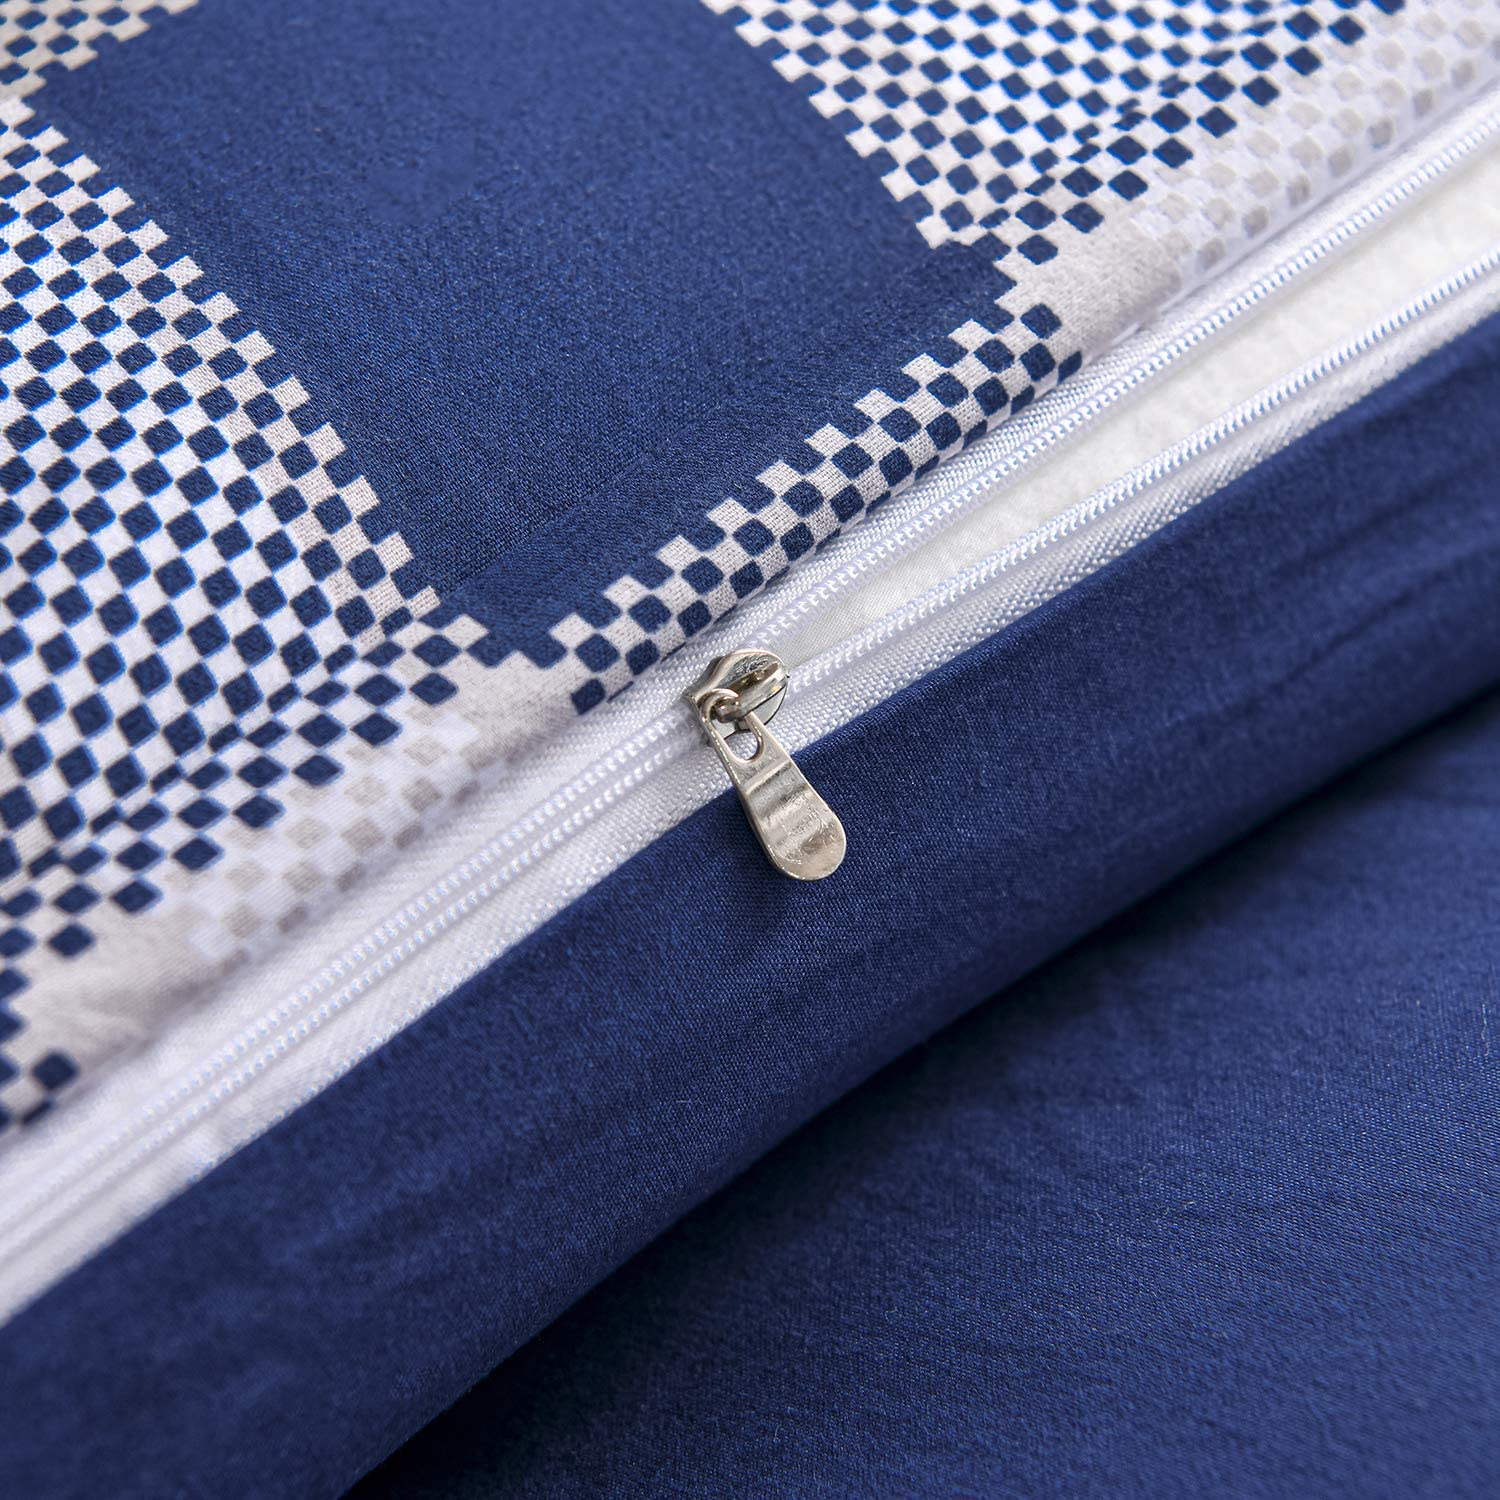 2Pcs,Blue Plaid,Twin softan Bedding Duvet Cover Set with Zipper Closure /& Corner Ties Soft and Breathable Washed Microfiber Grid Comforter Cover for All Seasons